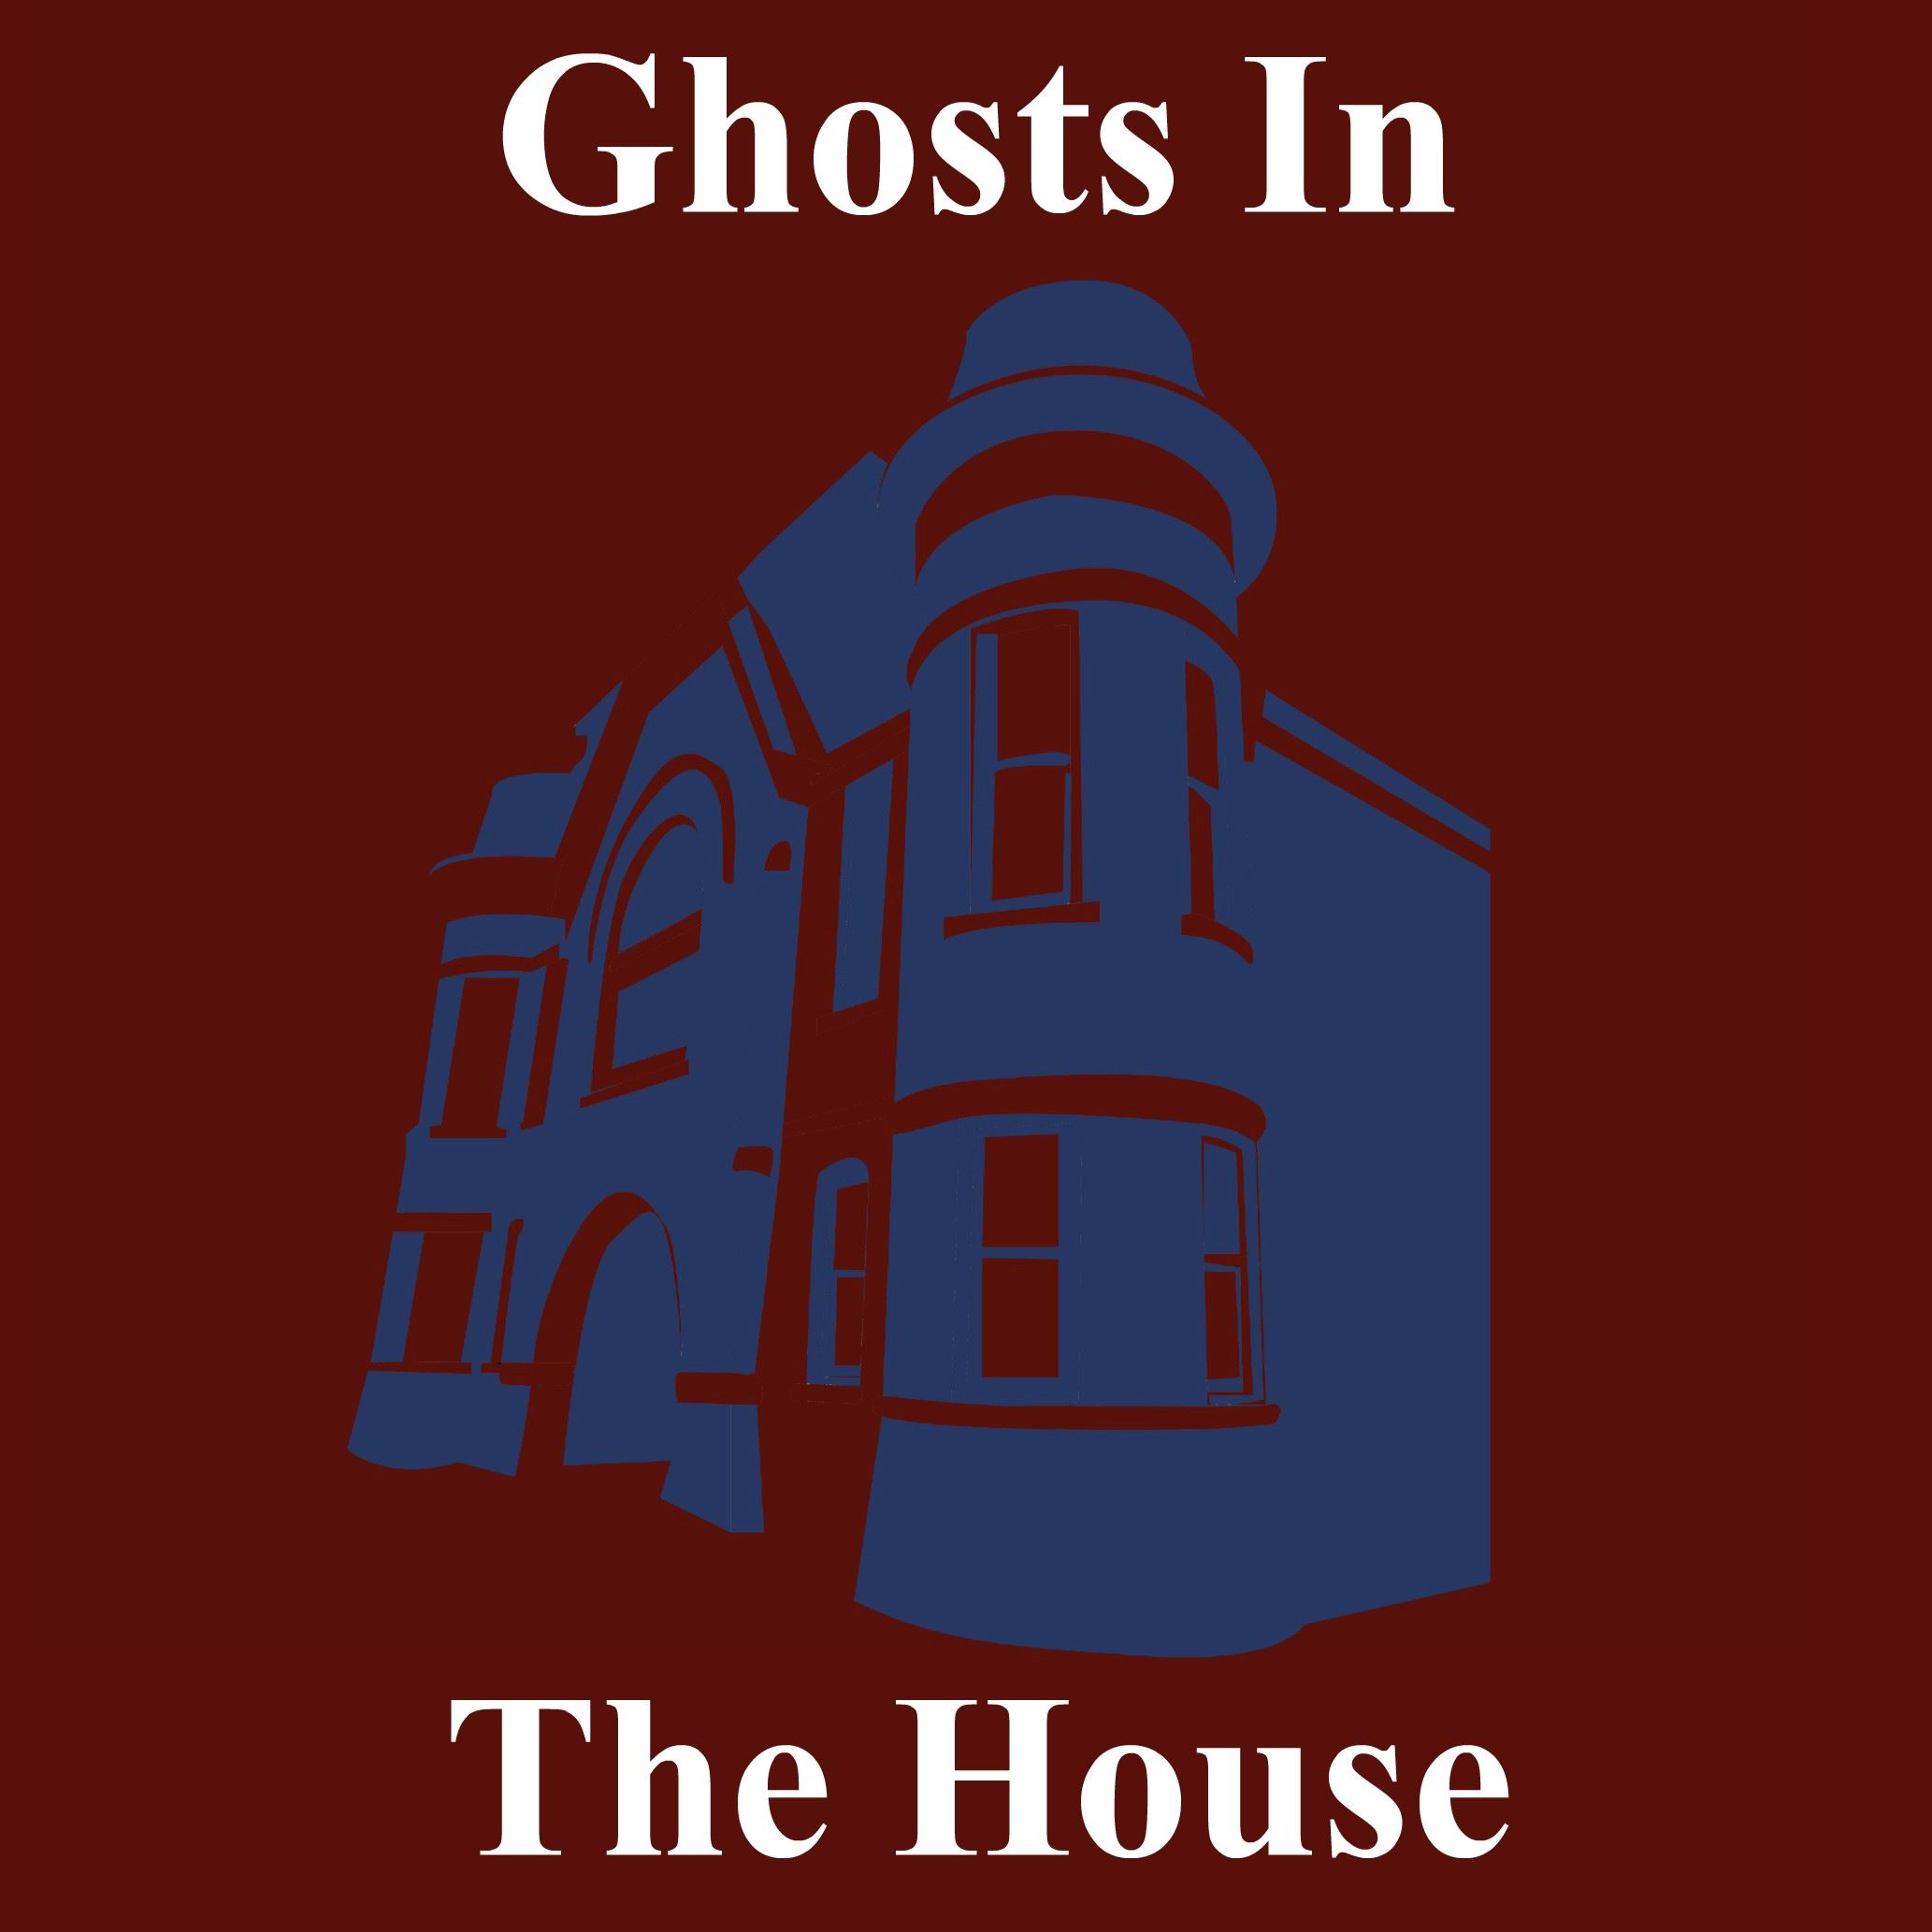 CLICK HERE To Read More About The History Of The Opera House: Ghosts In The House